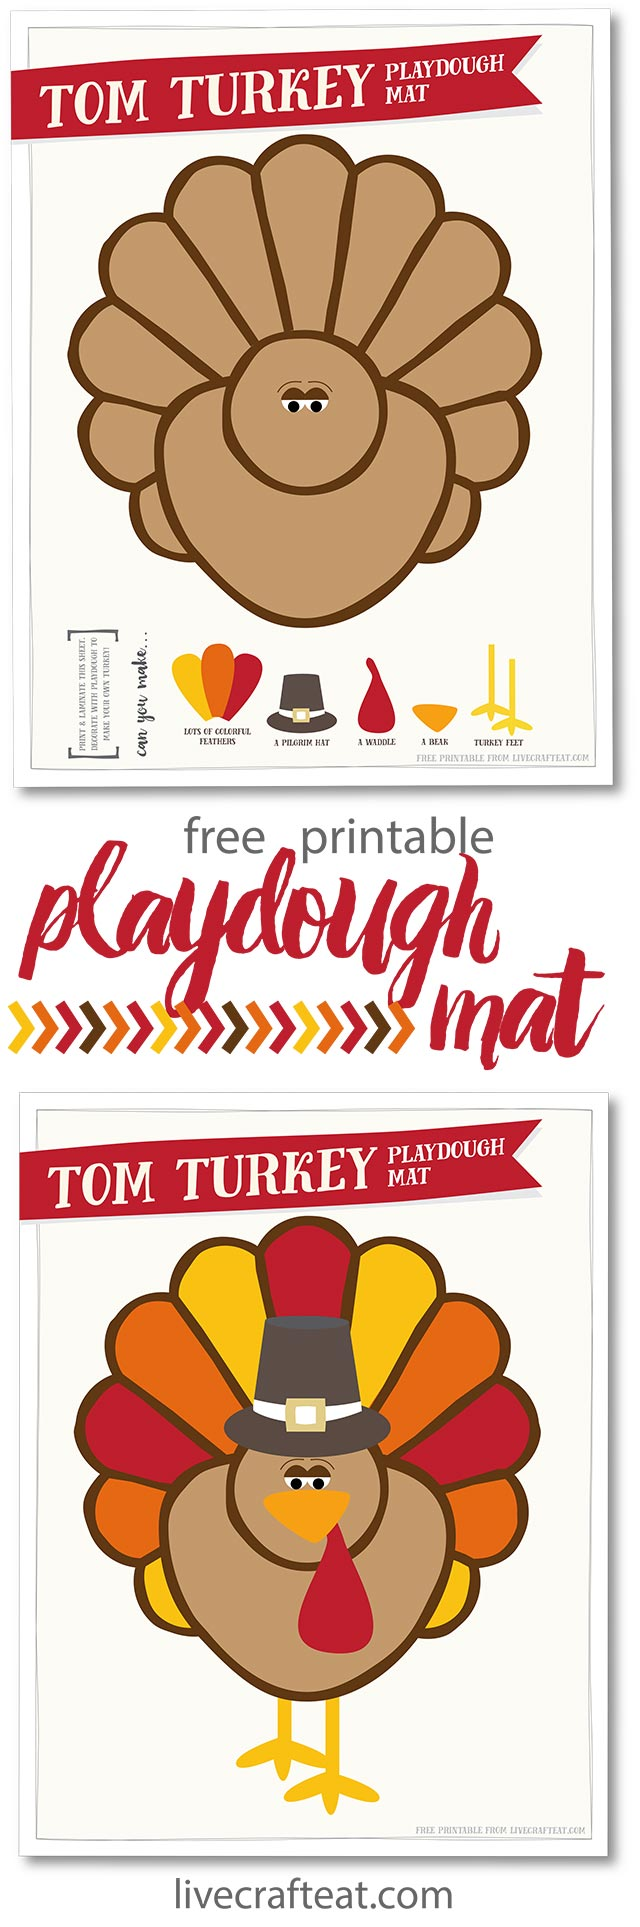 free printable thanksgiving turkey playdough mat